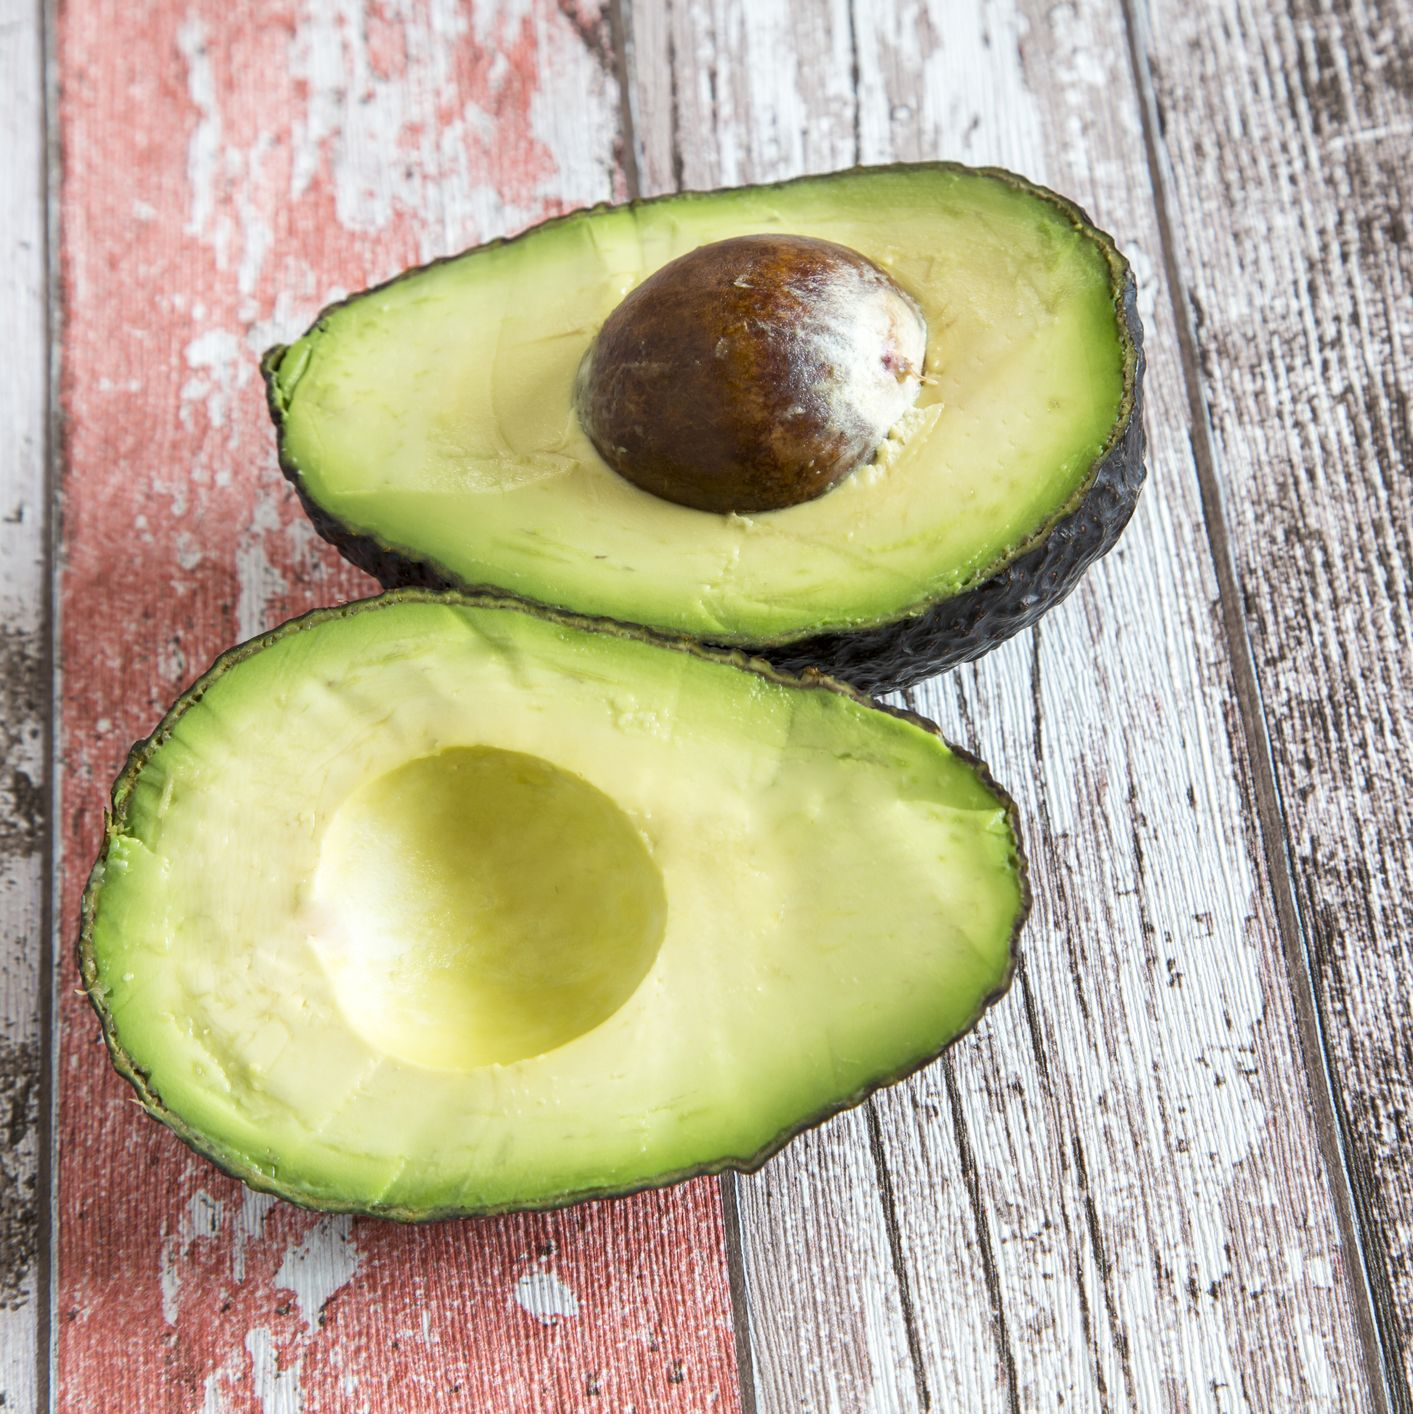 Can You Freeze An Avocado To Keep It Ripe?